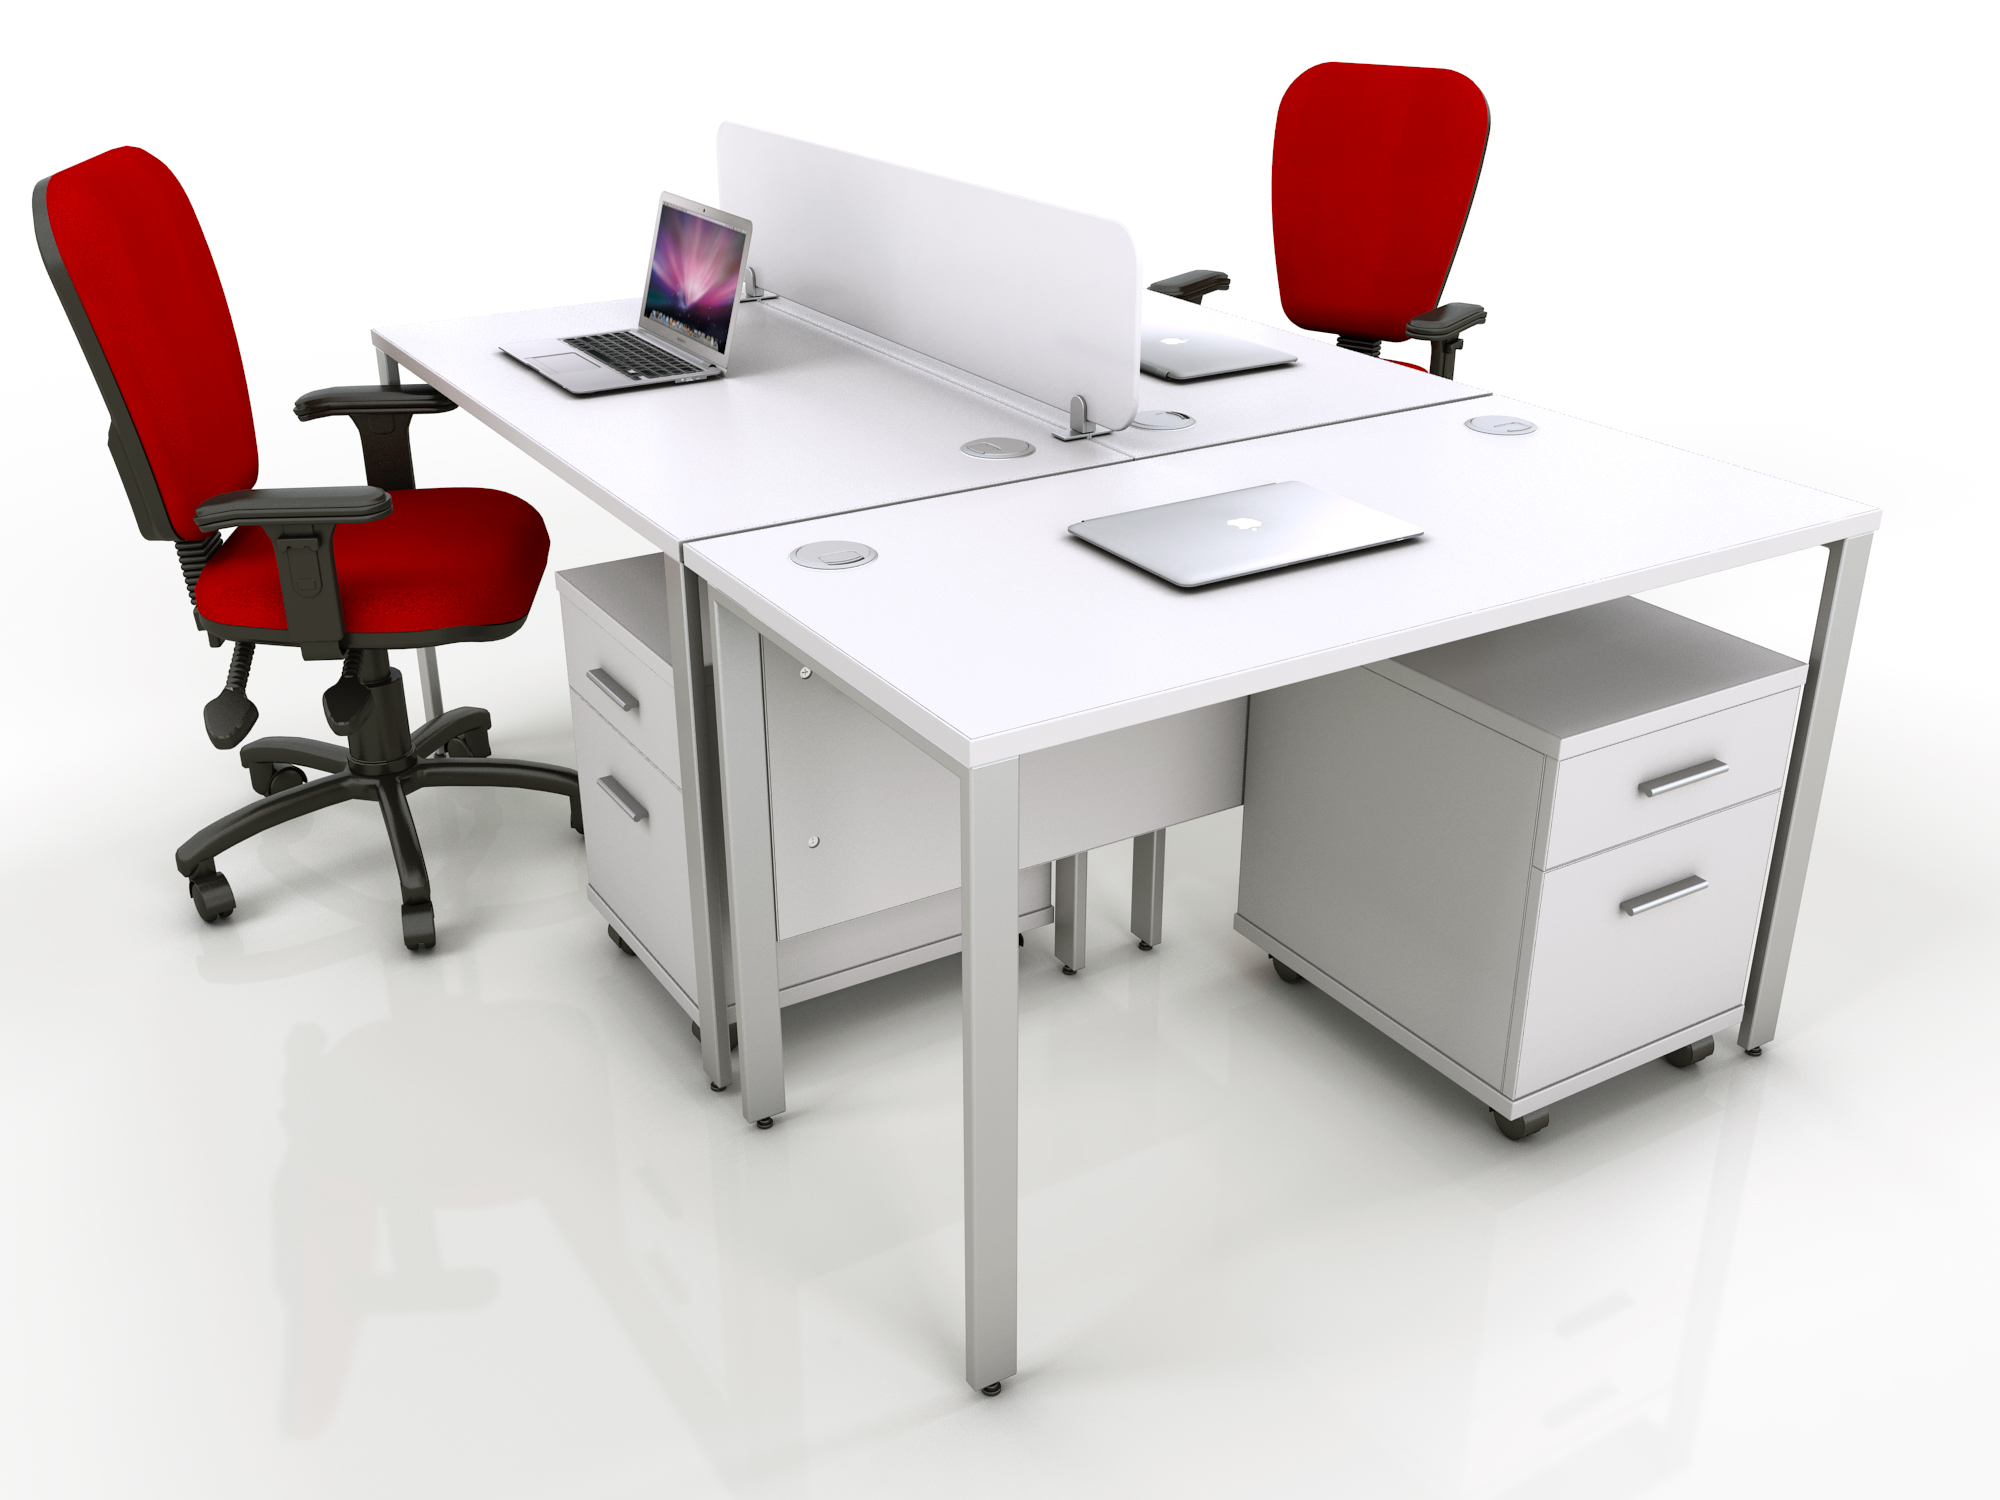 Wholesale Office Furniture Suppliers Uk Icarus Office Furniture